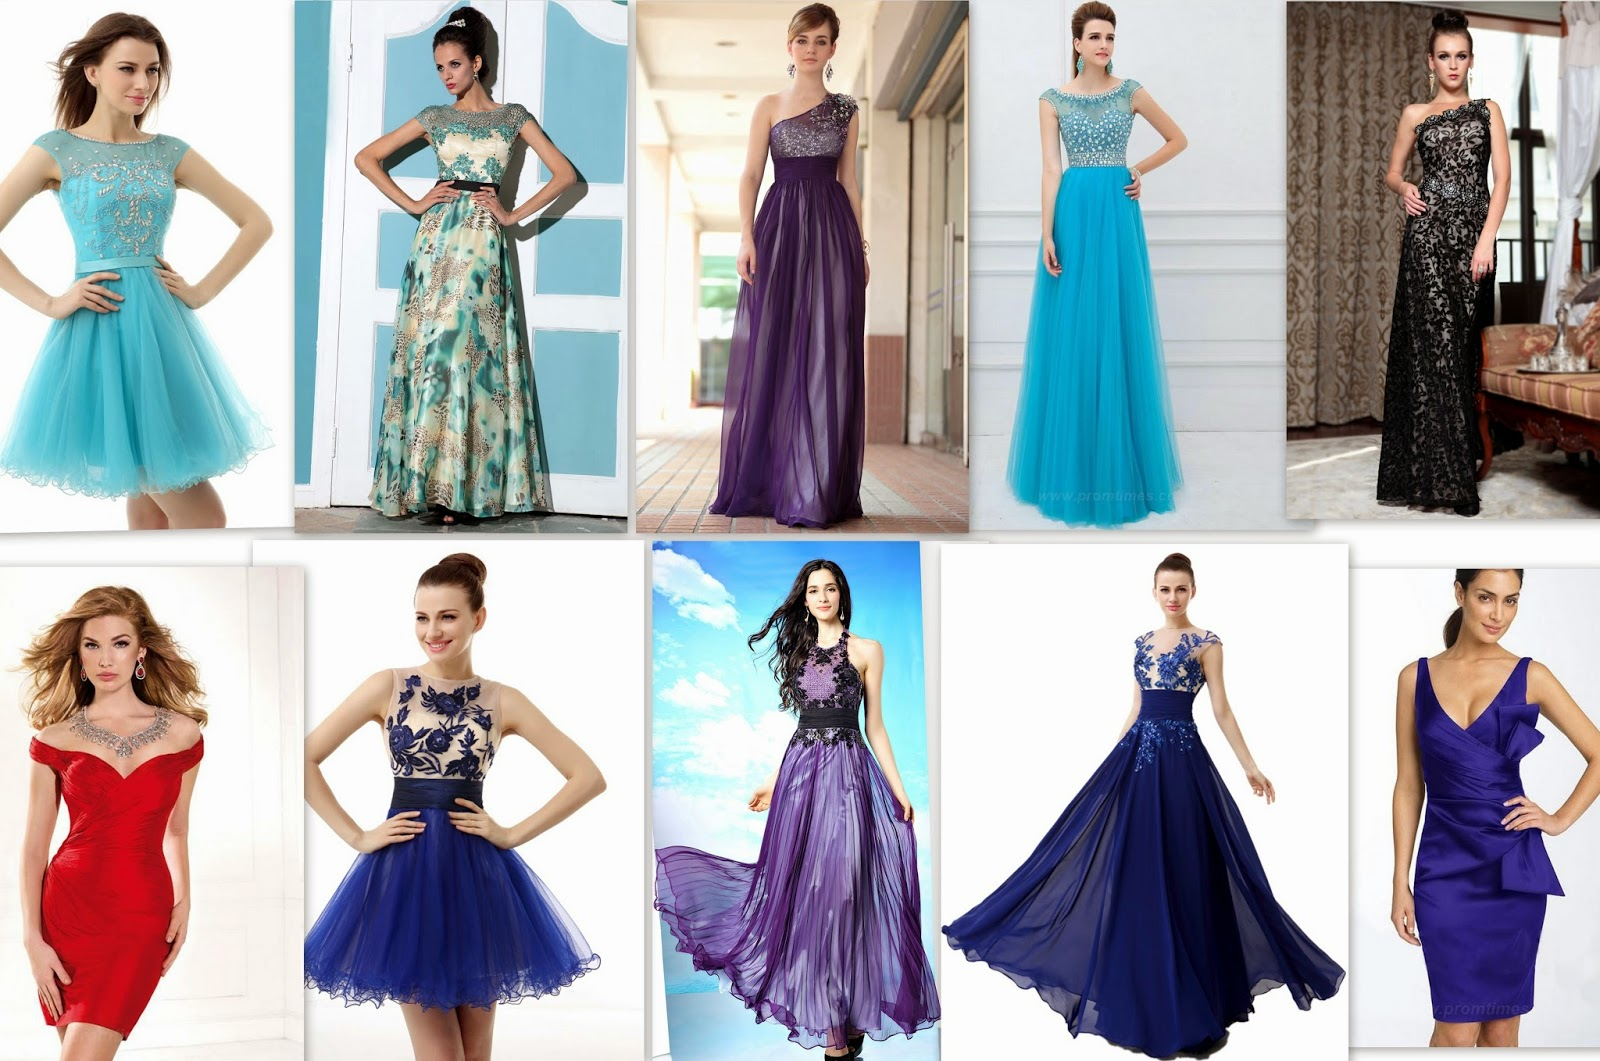 http://www.promtimes.co.uk/prom-cocktail-dresses.html